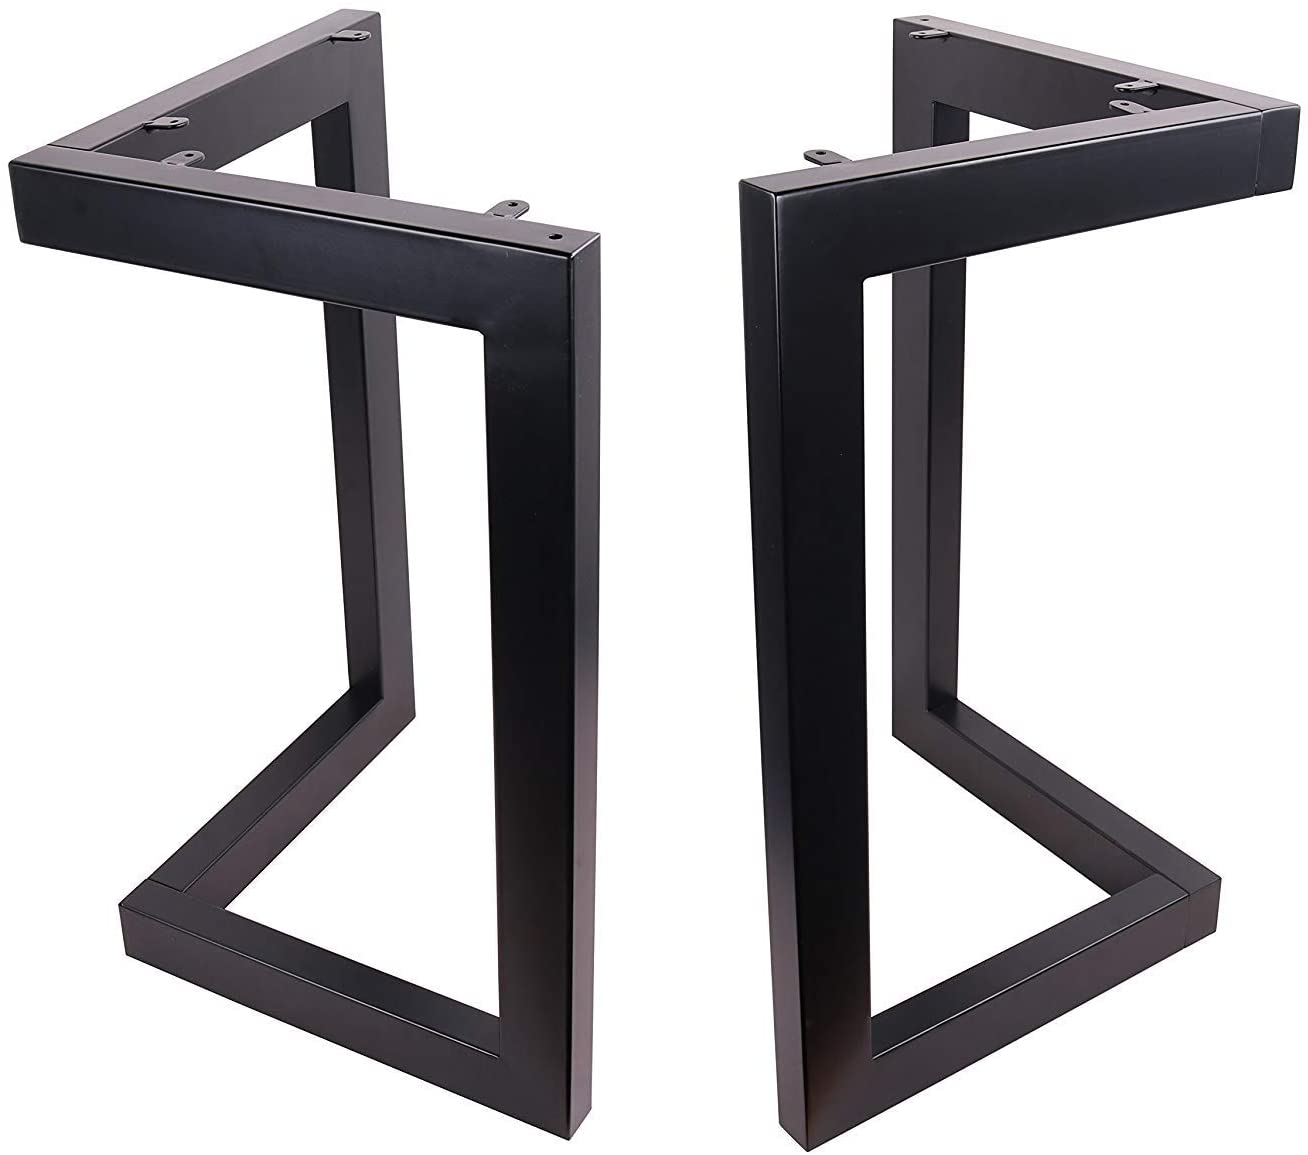 Office Table Legs,Computer Desk Legs,Industrial kitchen table legs,Black 4 x 28  Angled Steel Dining Table Legs Steel coffee table legs